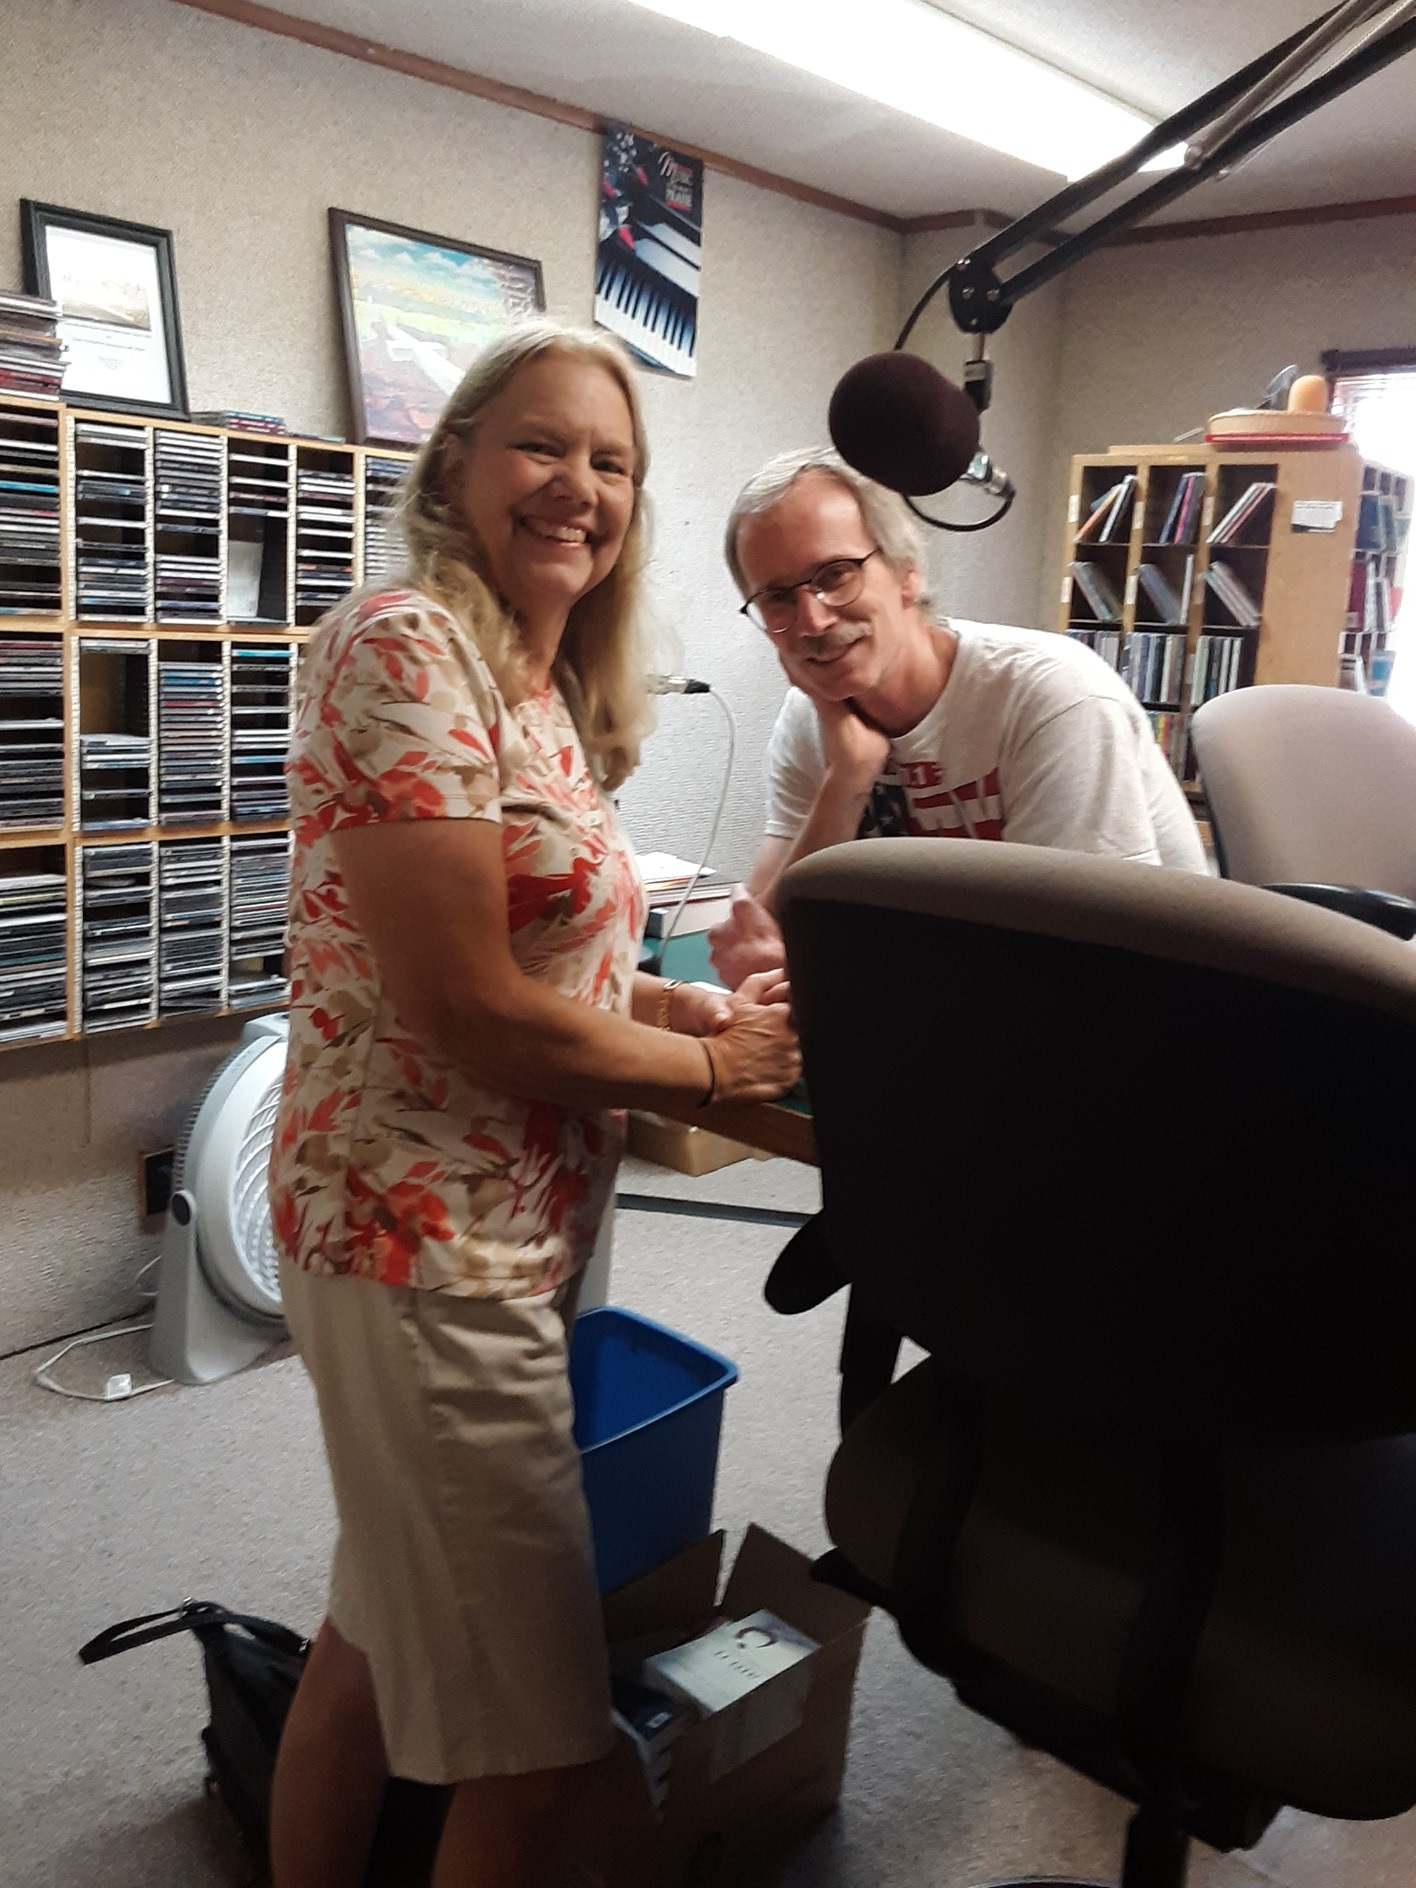 Marie Parker guest co-hosts on the Coffee Break with Russ on July 10th to talk about an upcoming VBS, and also an upcoming Children's Worker Training on August 17th at the Calvary Memorial Church in Gering. Calvary Memorial is teaming up with Group Publishing to offer your Children's Ministry Staff the opportunity to train and get inspired with other Children's Ministry workers. (July 10)